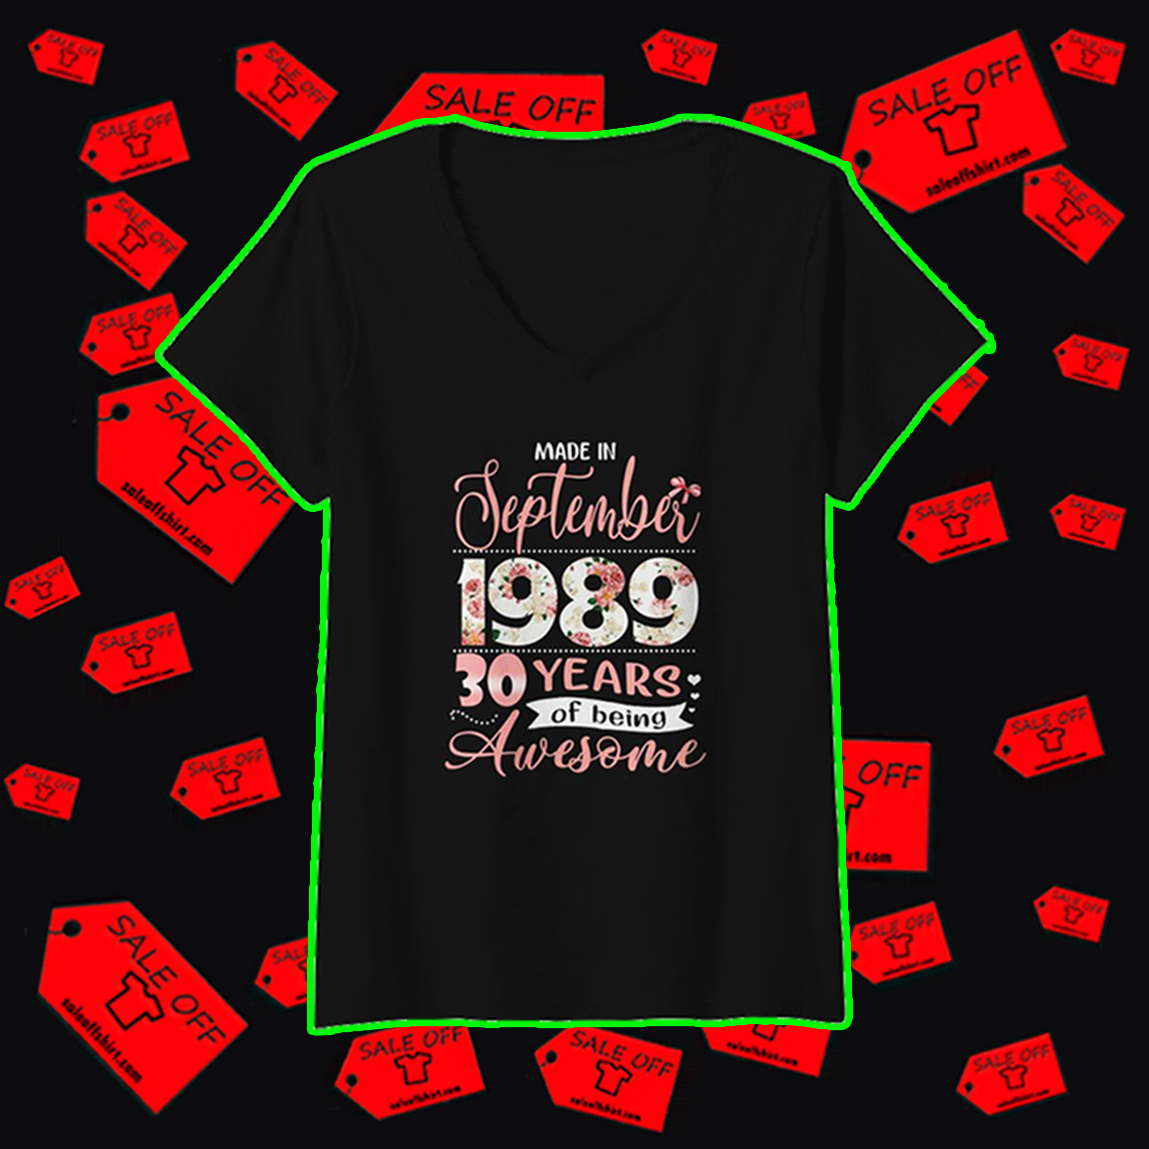 Made in september 1989 30 years of being awesome v-neck